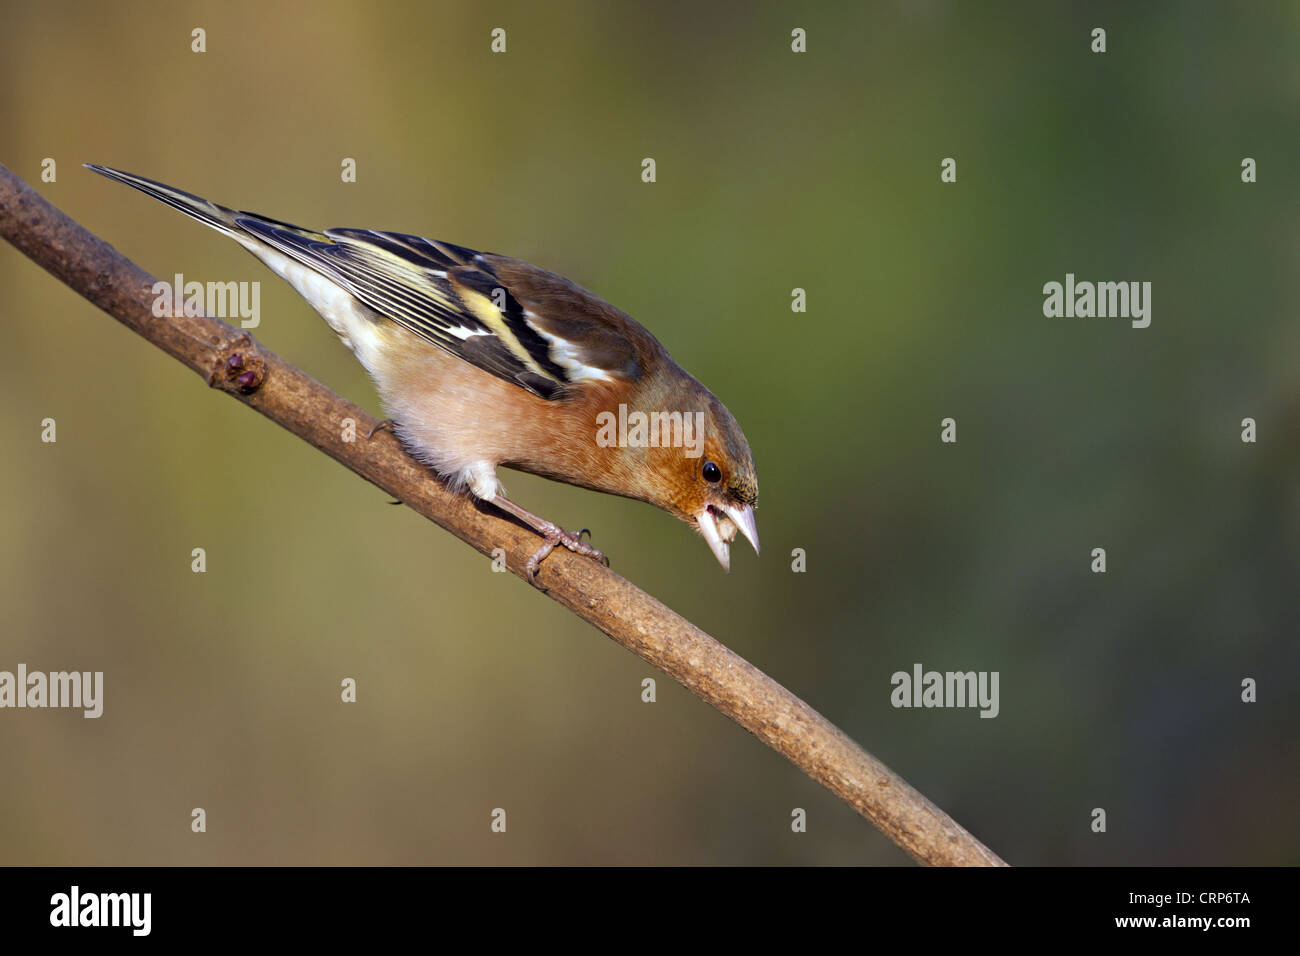 Chaffinch (Fringilla coelebs) adult male, feeding on seed, perched on branch, Norfolk, England, december - Stock Image